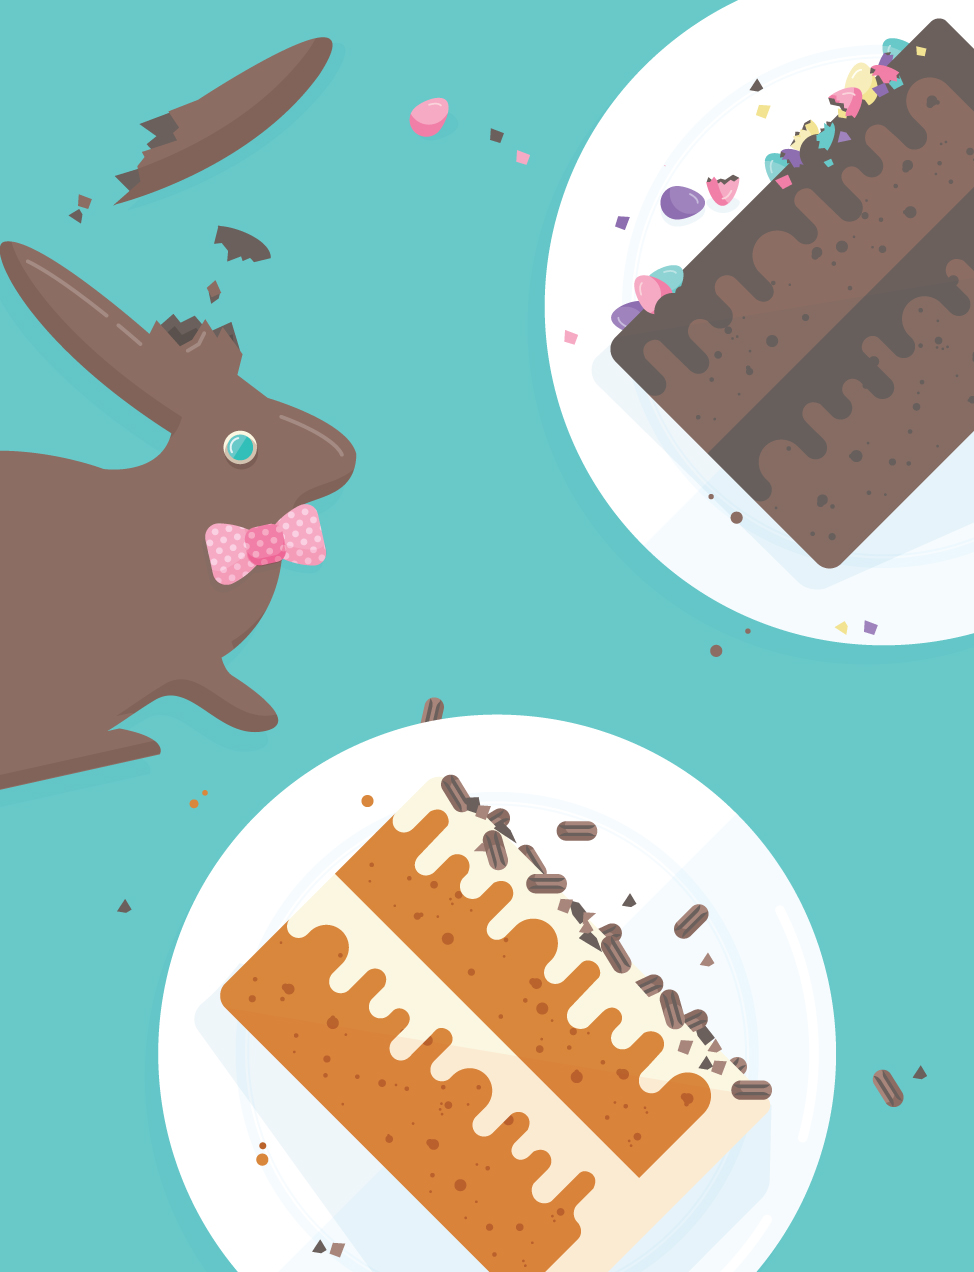 Easter illustration: broken chocolate bunny and cakes.